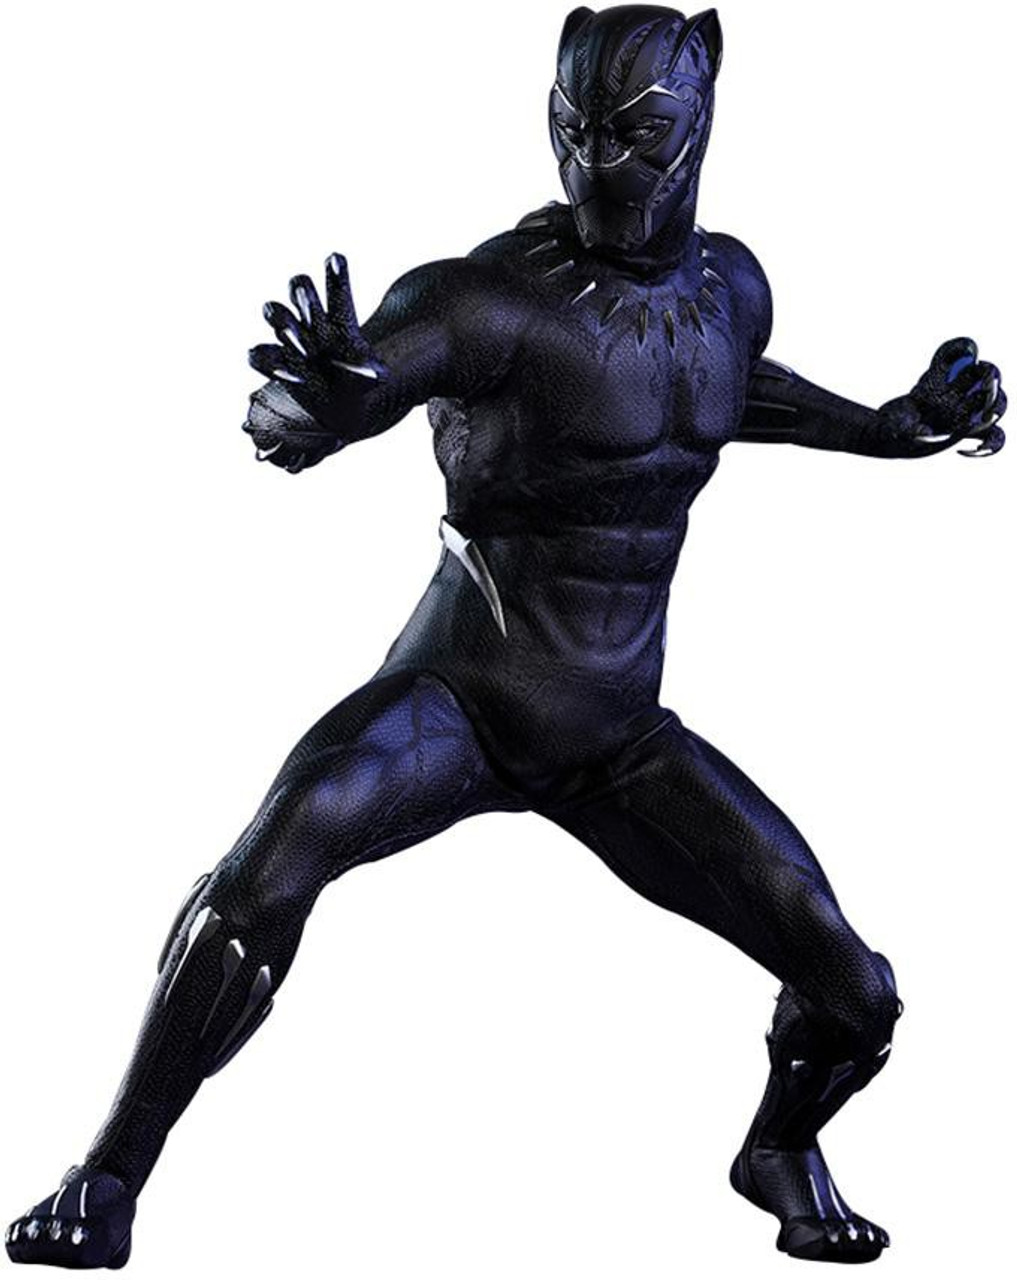 Marvel Movie Masterpiece Black Panther Collectible Figure MMS445 (Pre-Order ships March)